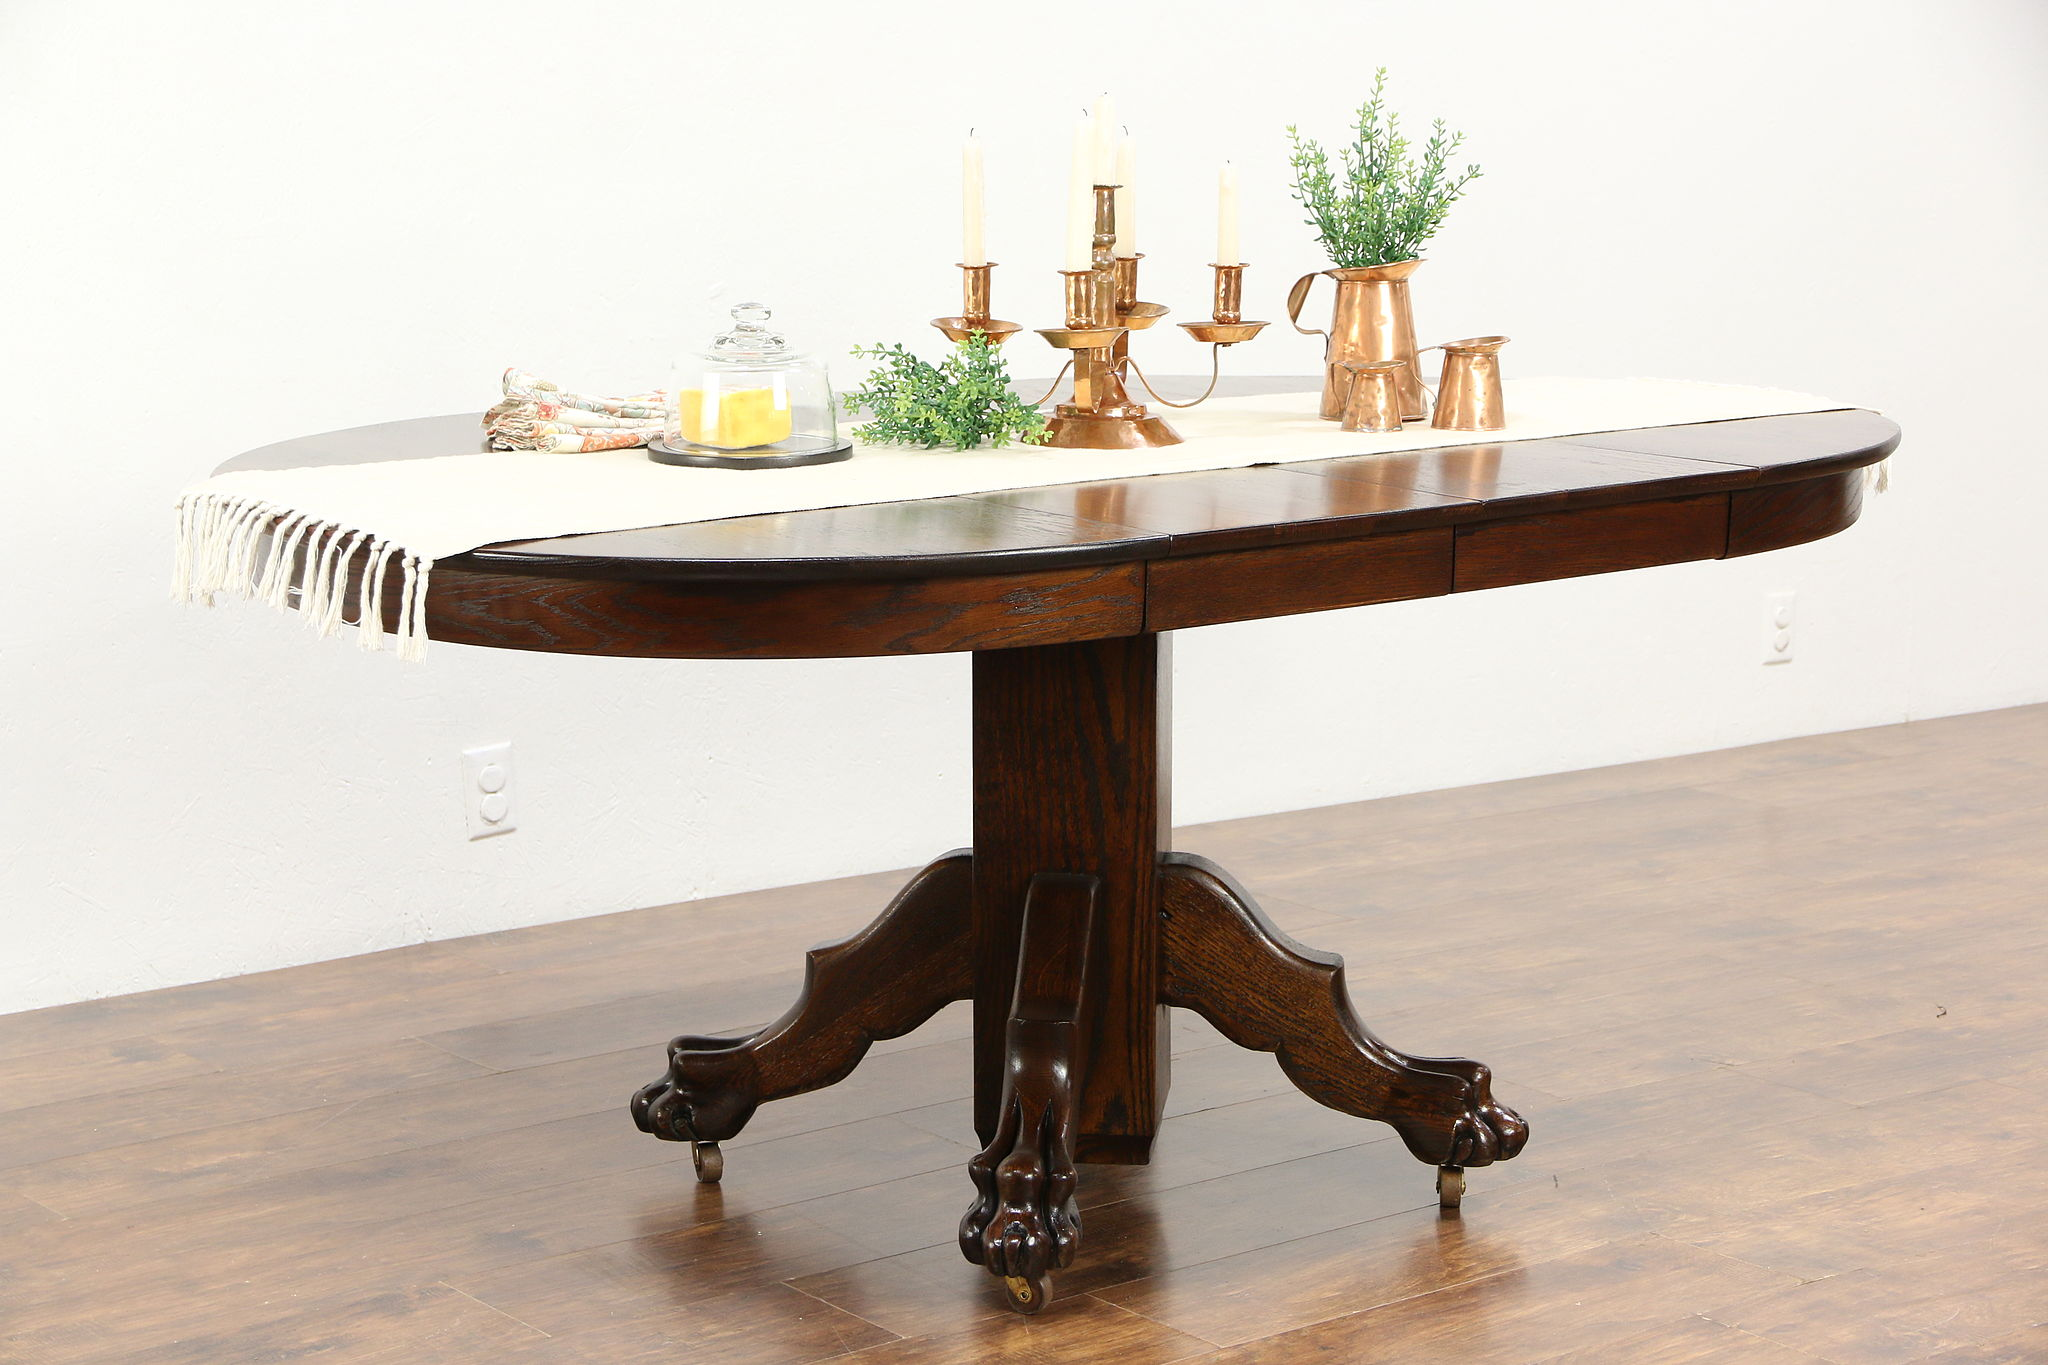 Sold Oak 1900 Antique 42 Round Dining Table 2 Leaves Carved Lion Paw Feet Harp Gallery Antiques Furniture